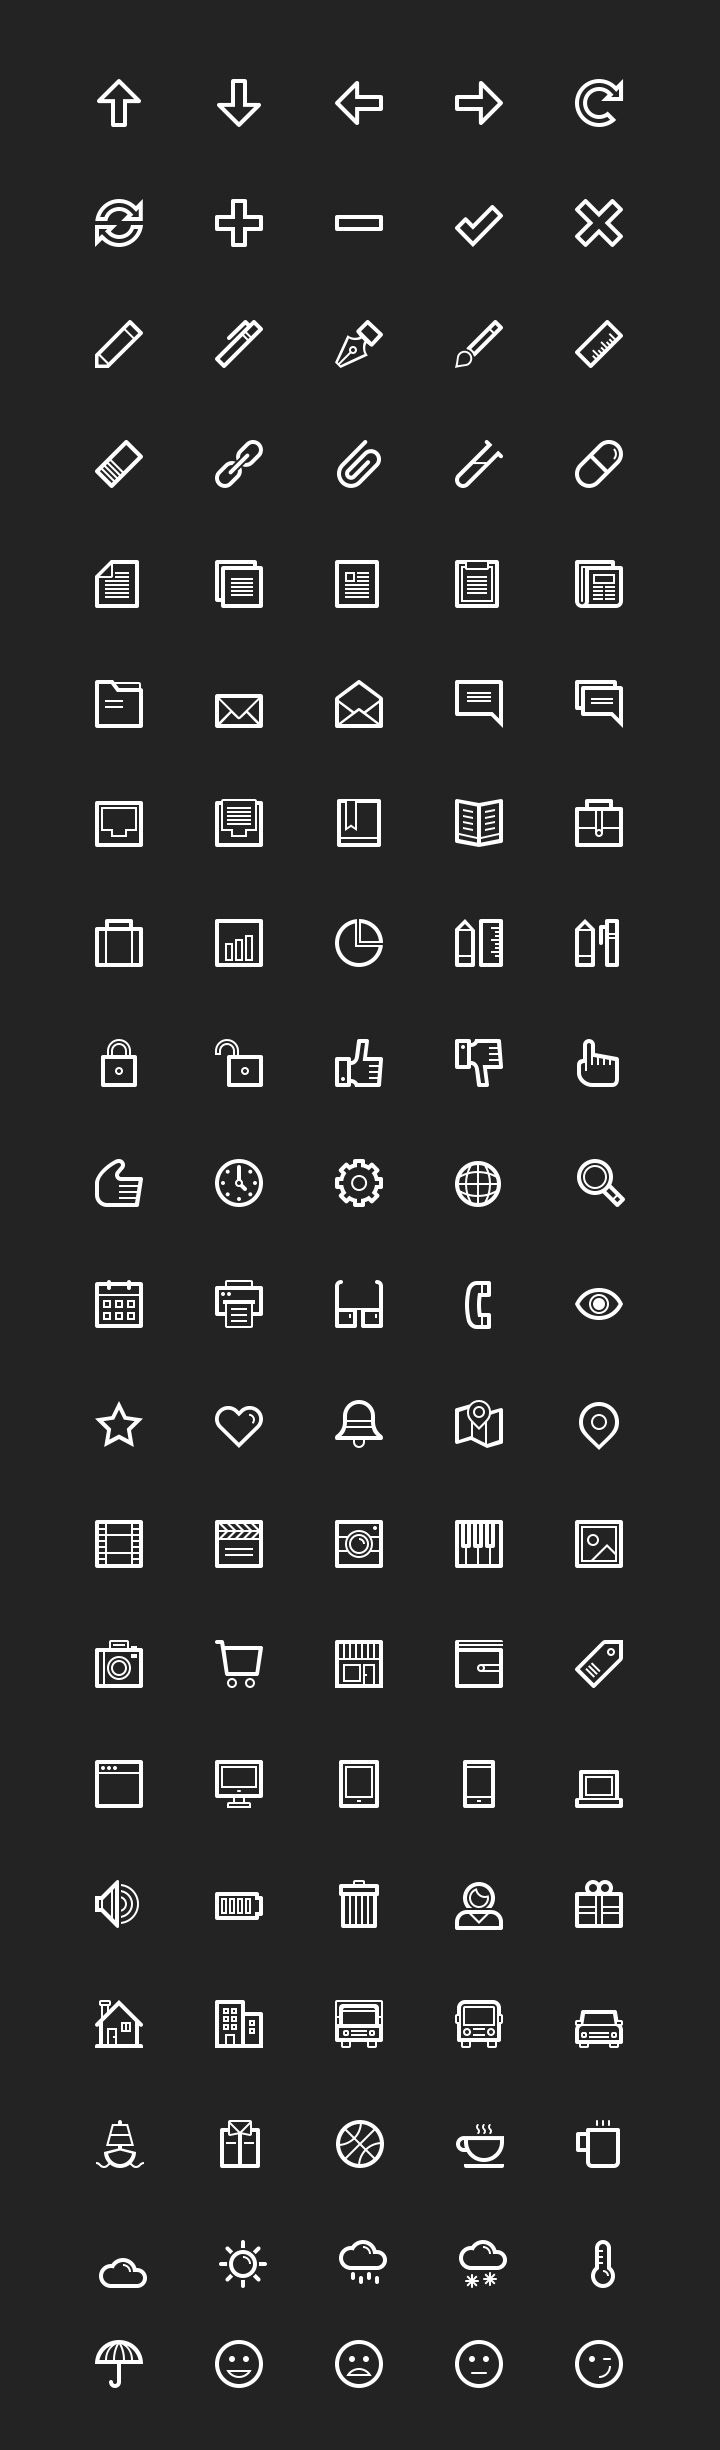 Today we want to share a free sample pack including 100 essential line icons from LineArt, a premium icon pack including 700 line-based pict...